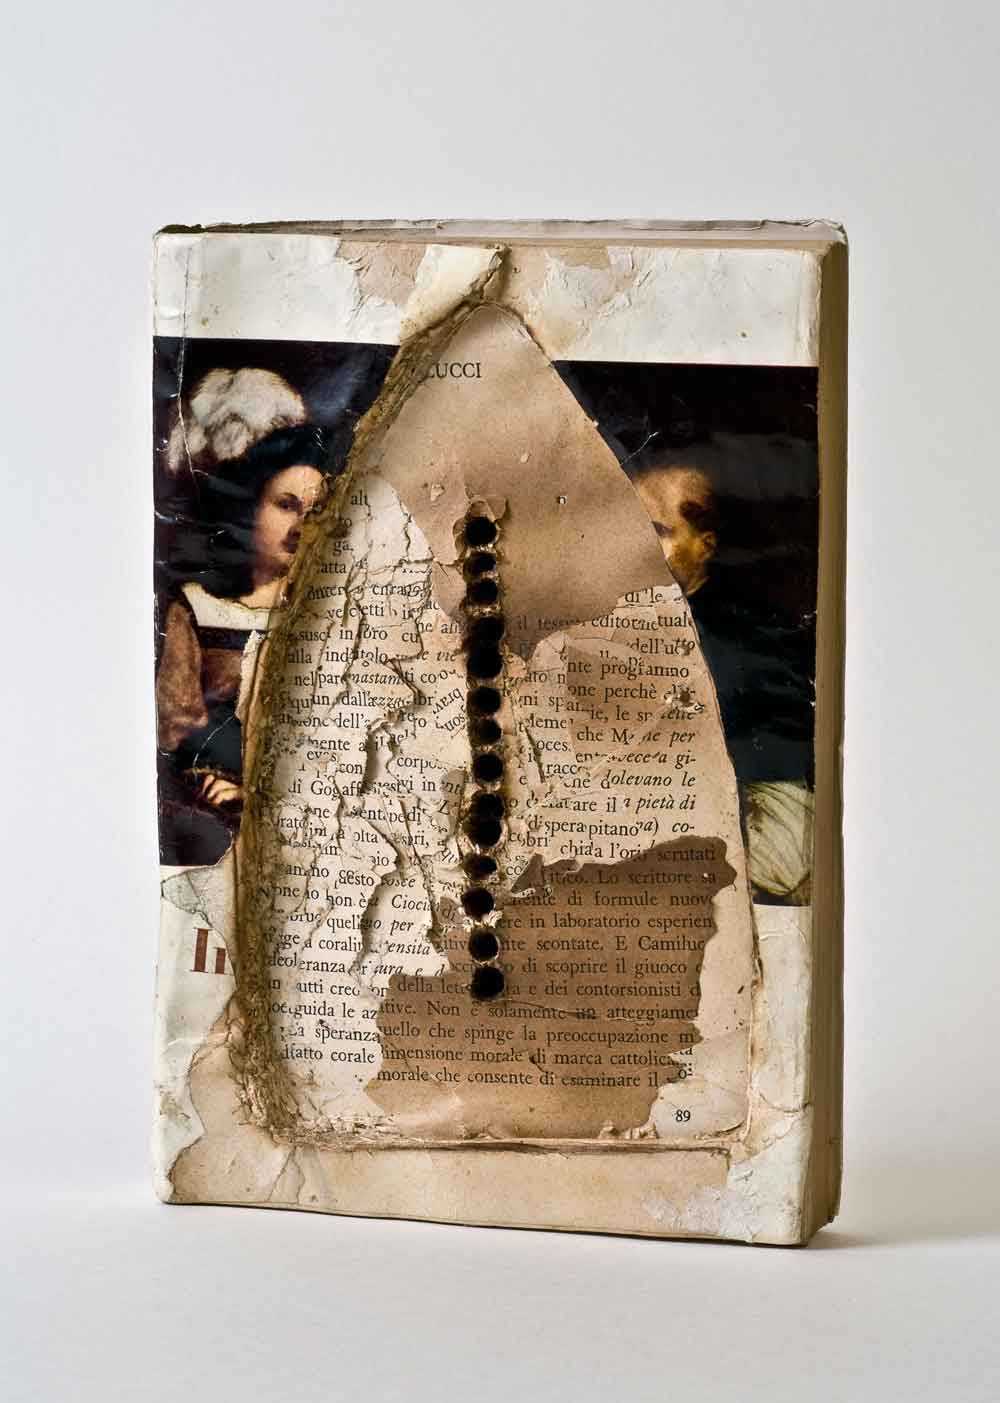 Elisabetta Gut, 14 Nails (The imprint of ManRay) (Book-object, 1991, assemblage: book found, drilling with nails, burning with iron 23 x 23.5 cm